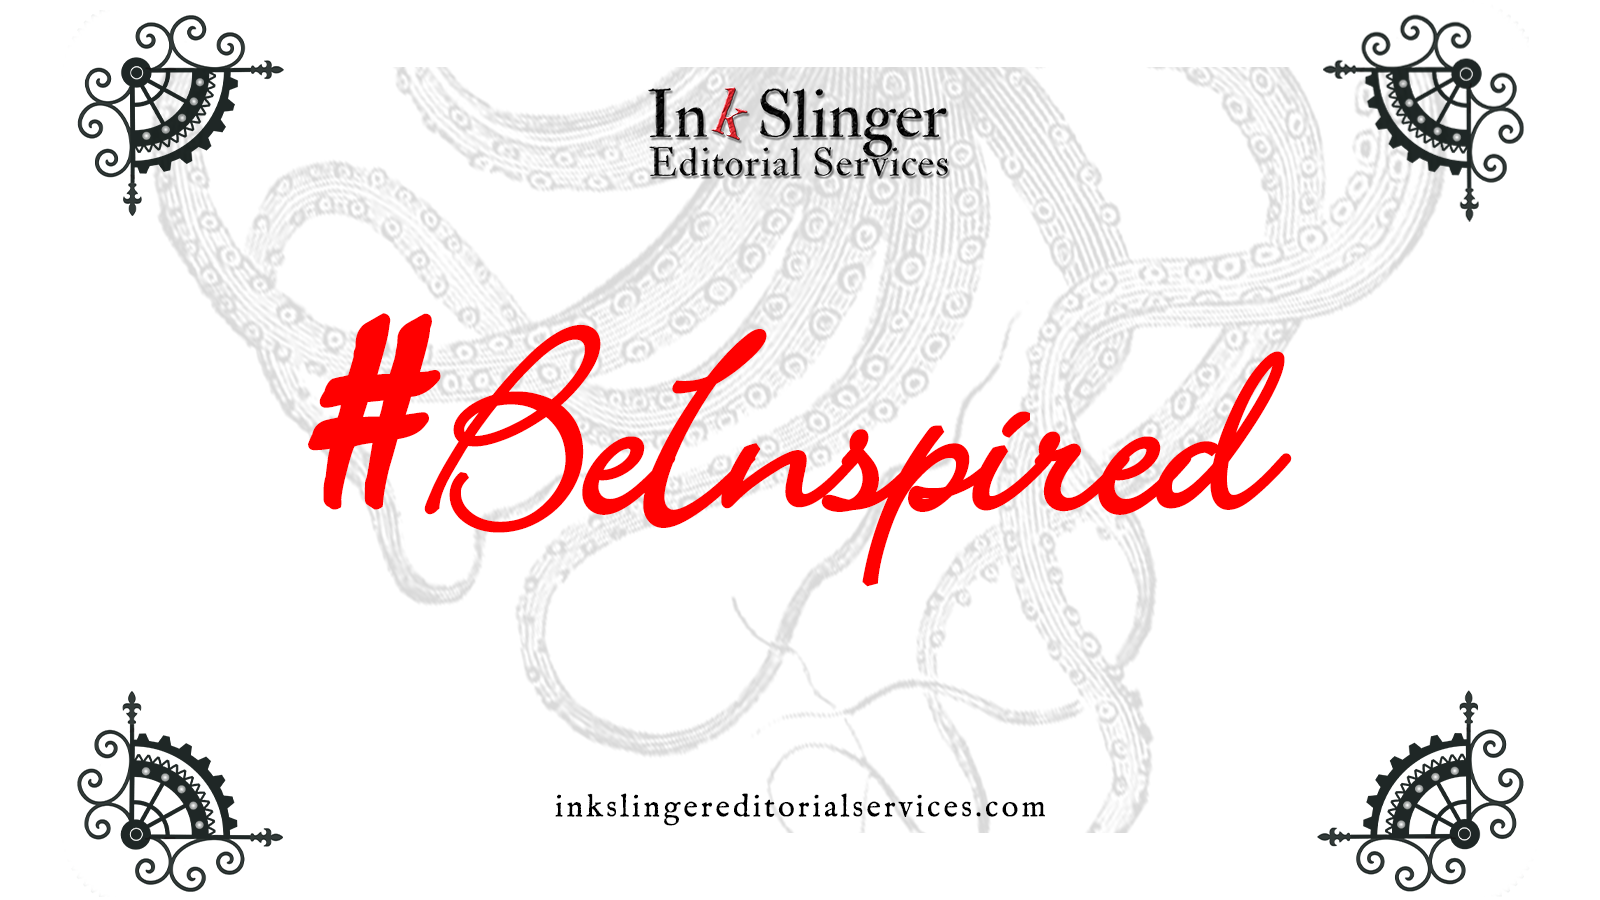 #BeInspired in red script with Ink Slinger Editorial Services logo